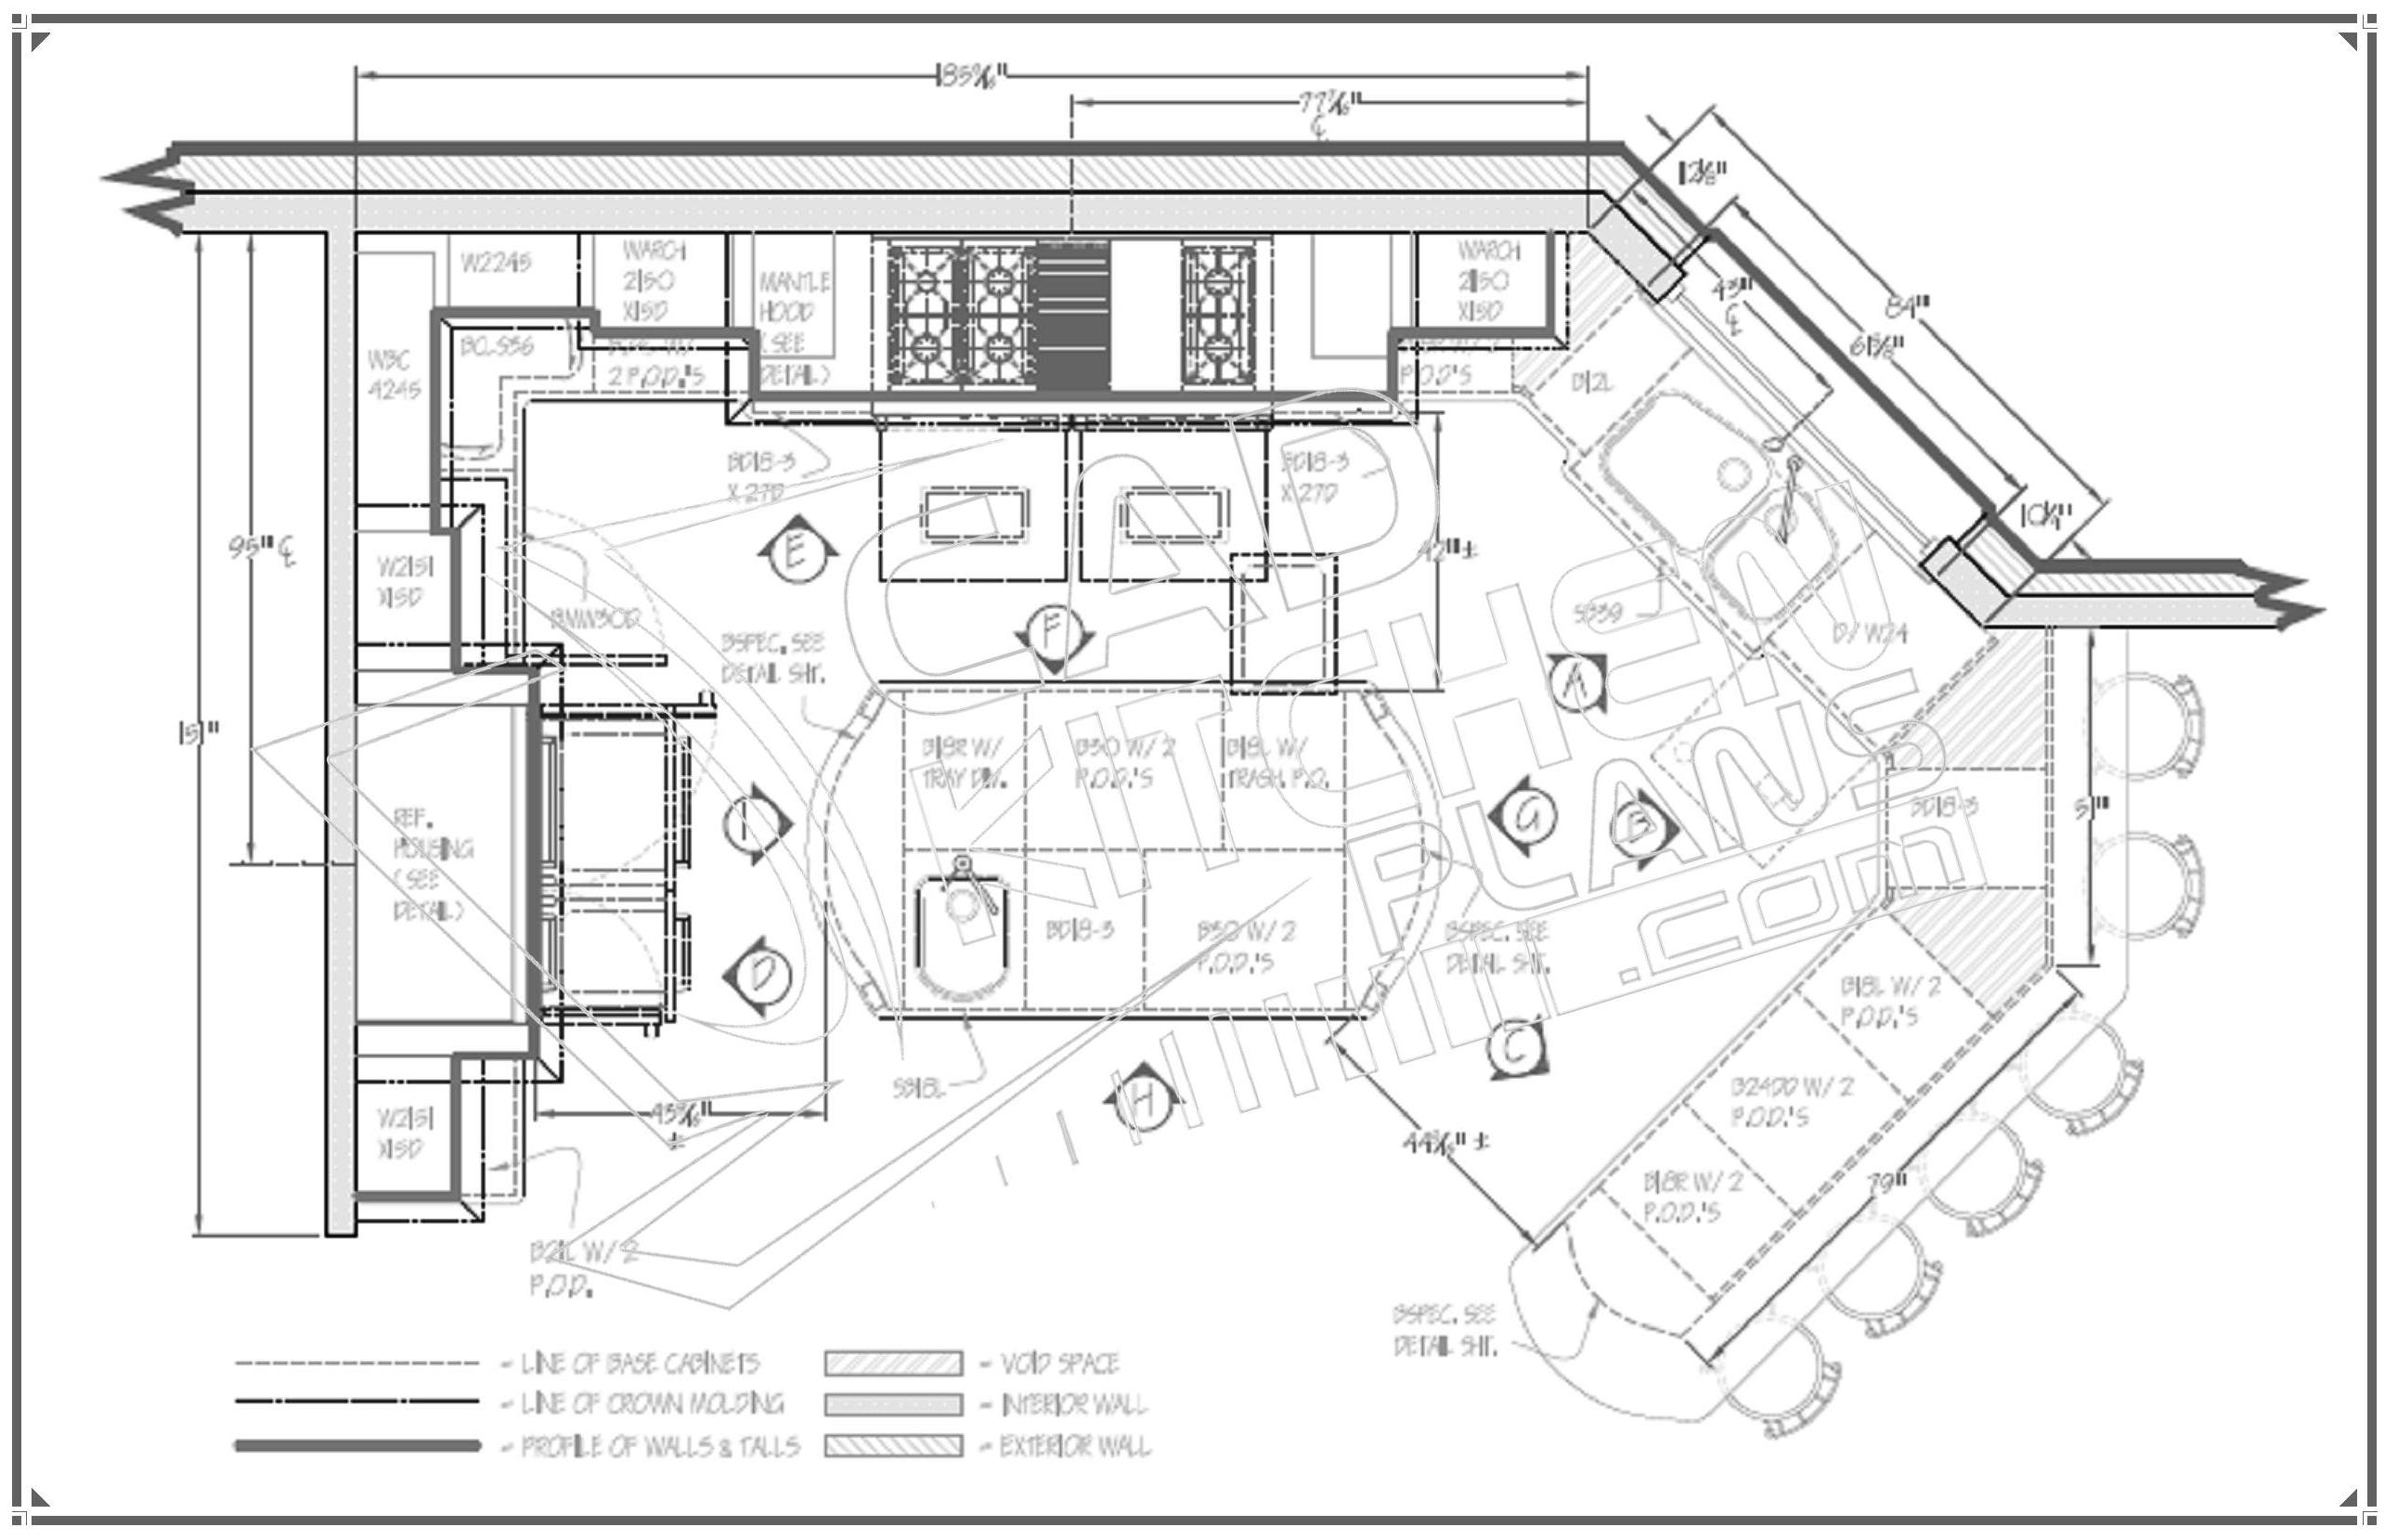 Restaurant kitchen plans design afreakatheart for Kitchen design layout